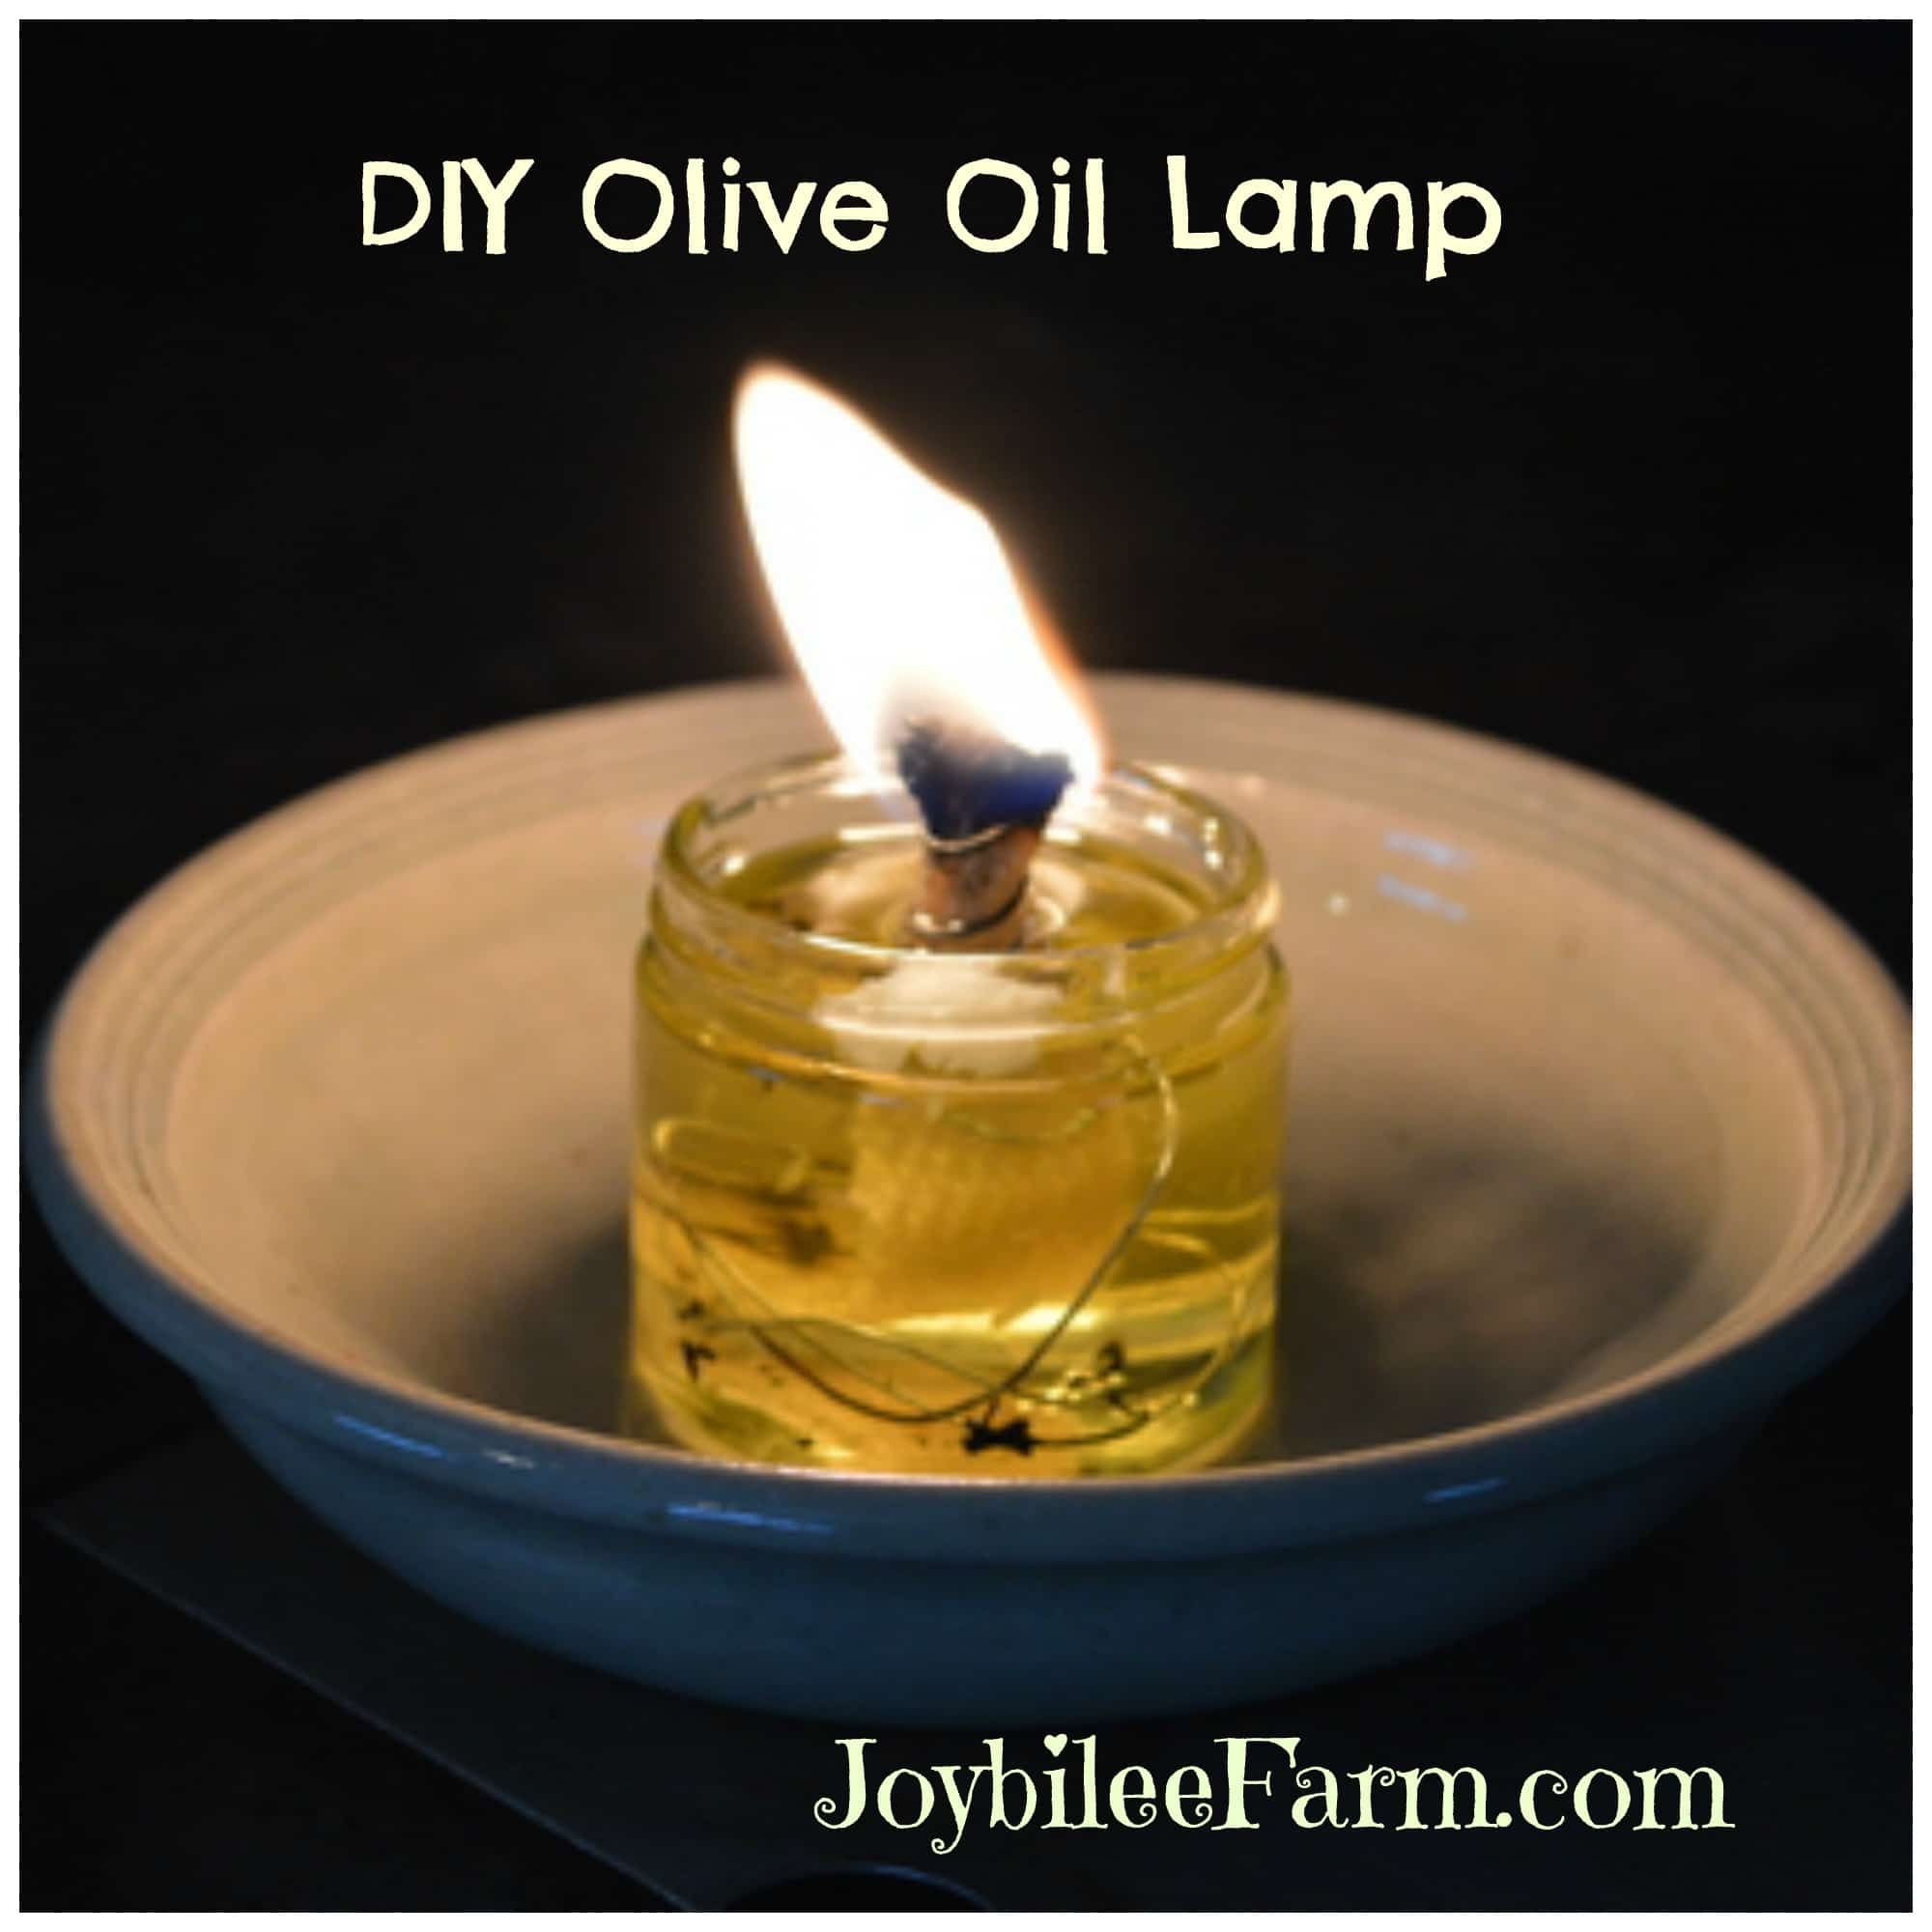 DIY Olive Oil Lamp, the lost art you need to know | Joybilee